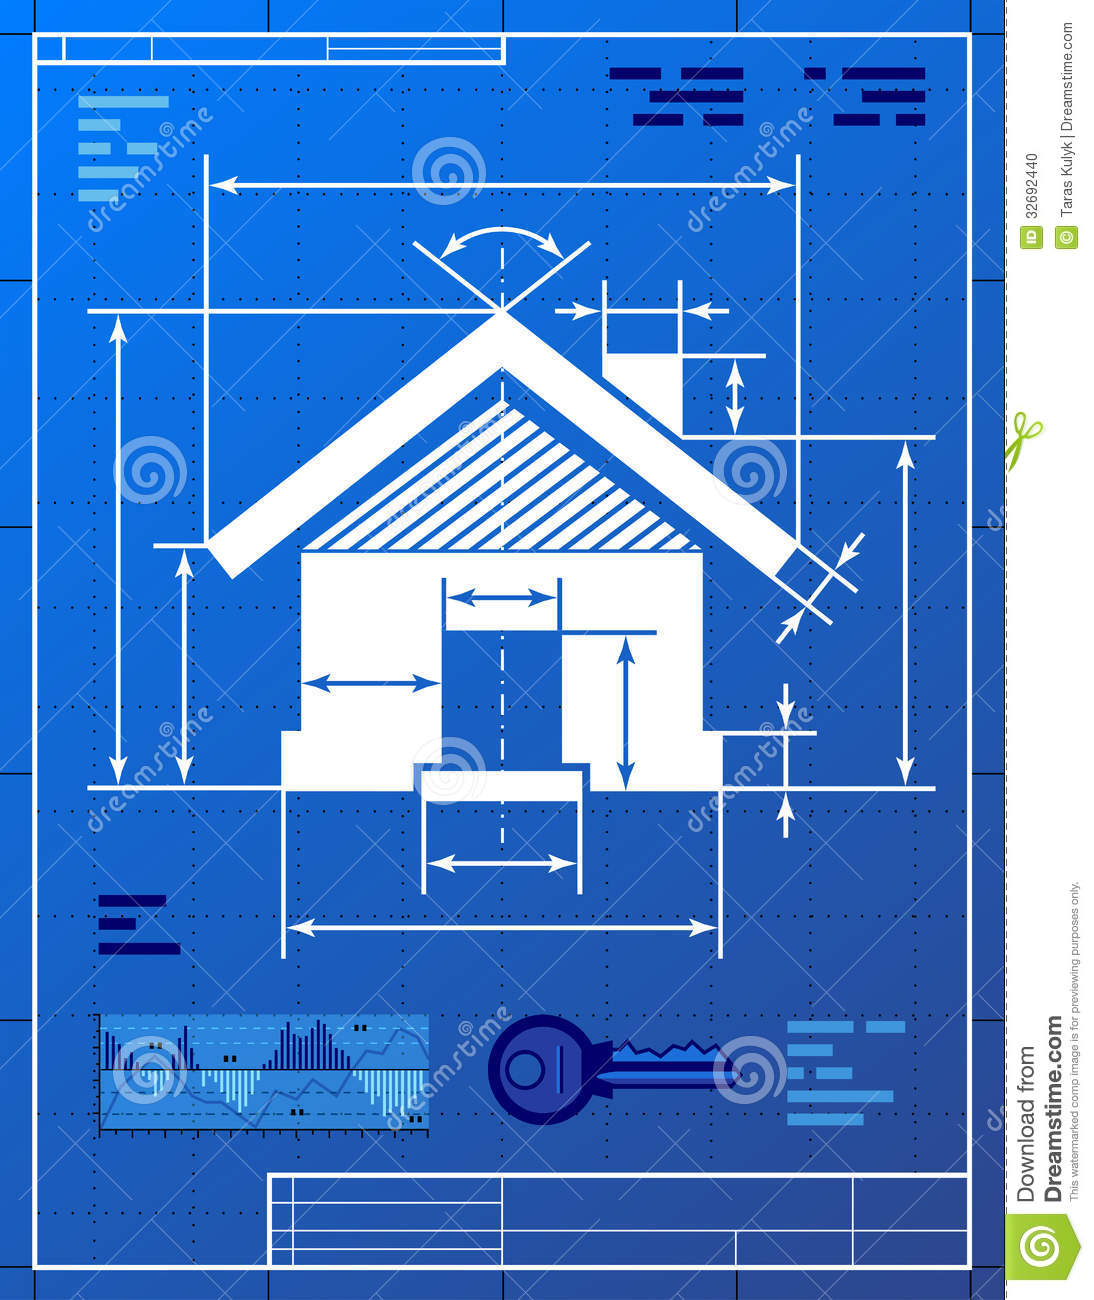 Home symbol like blueprint drawing stock vector illustration of home symbol like blueprint drawing malvernweather Images